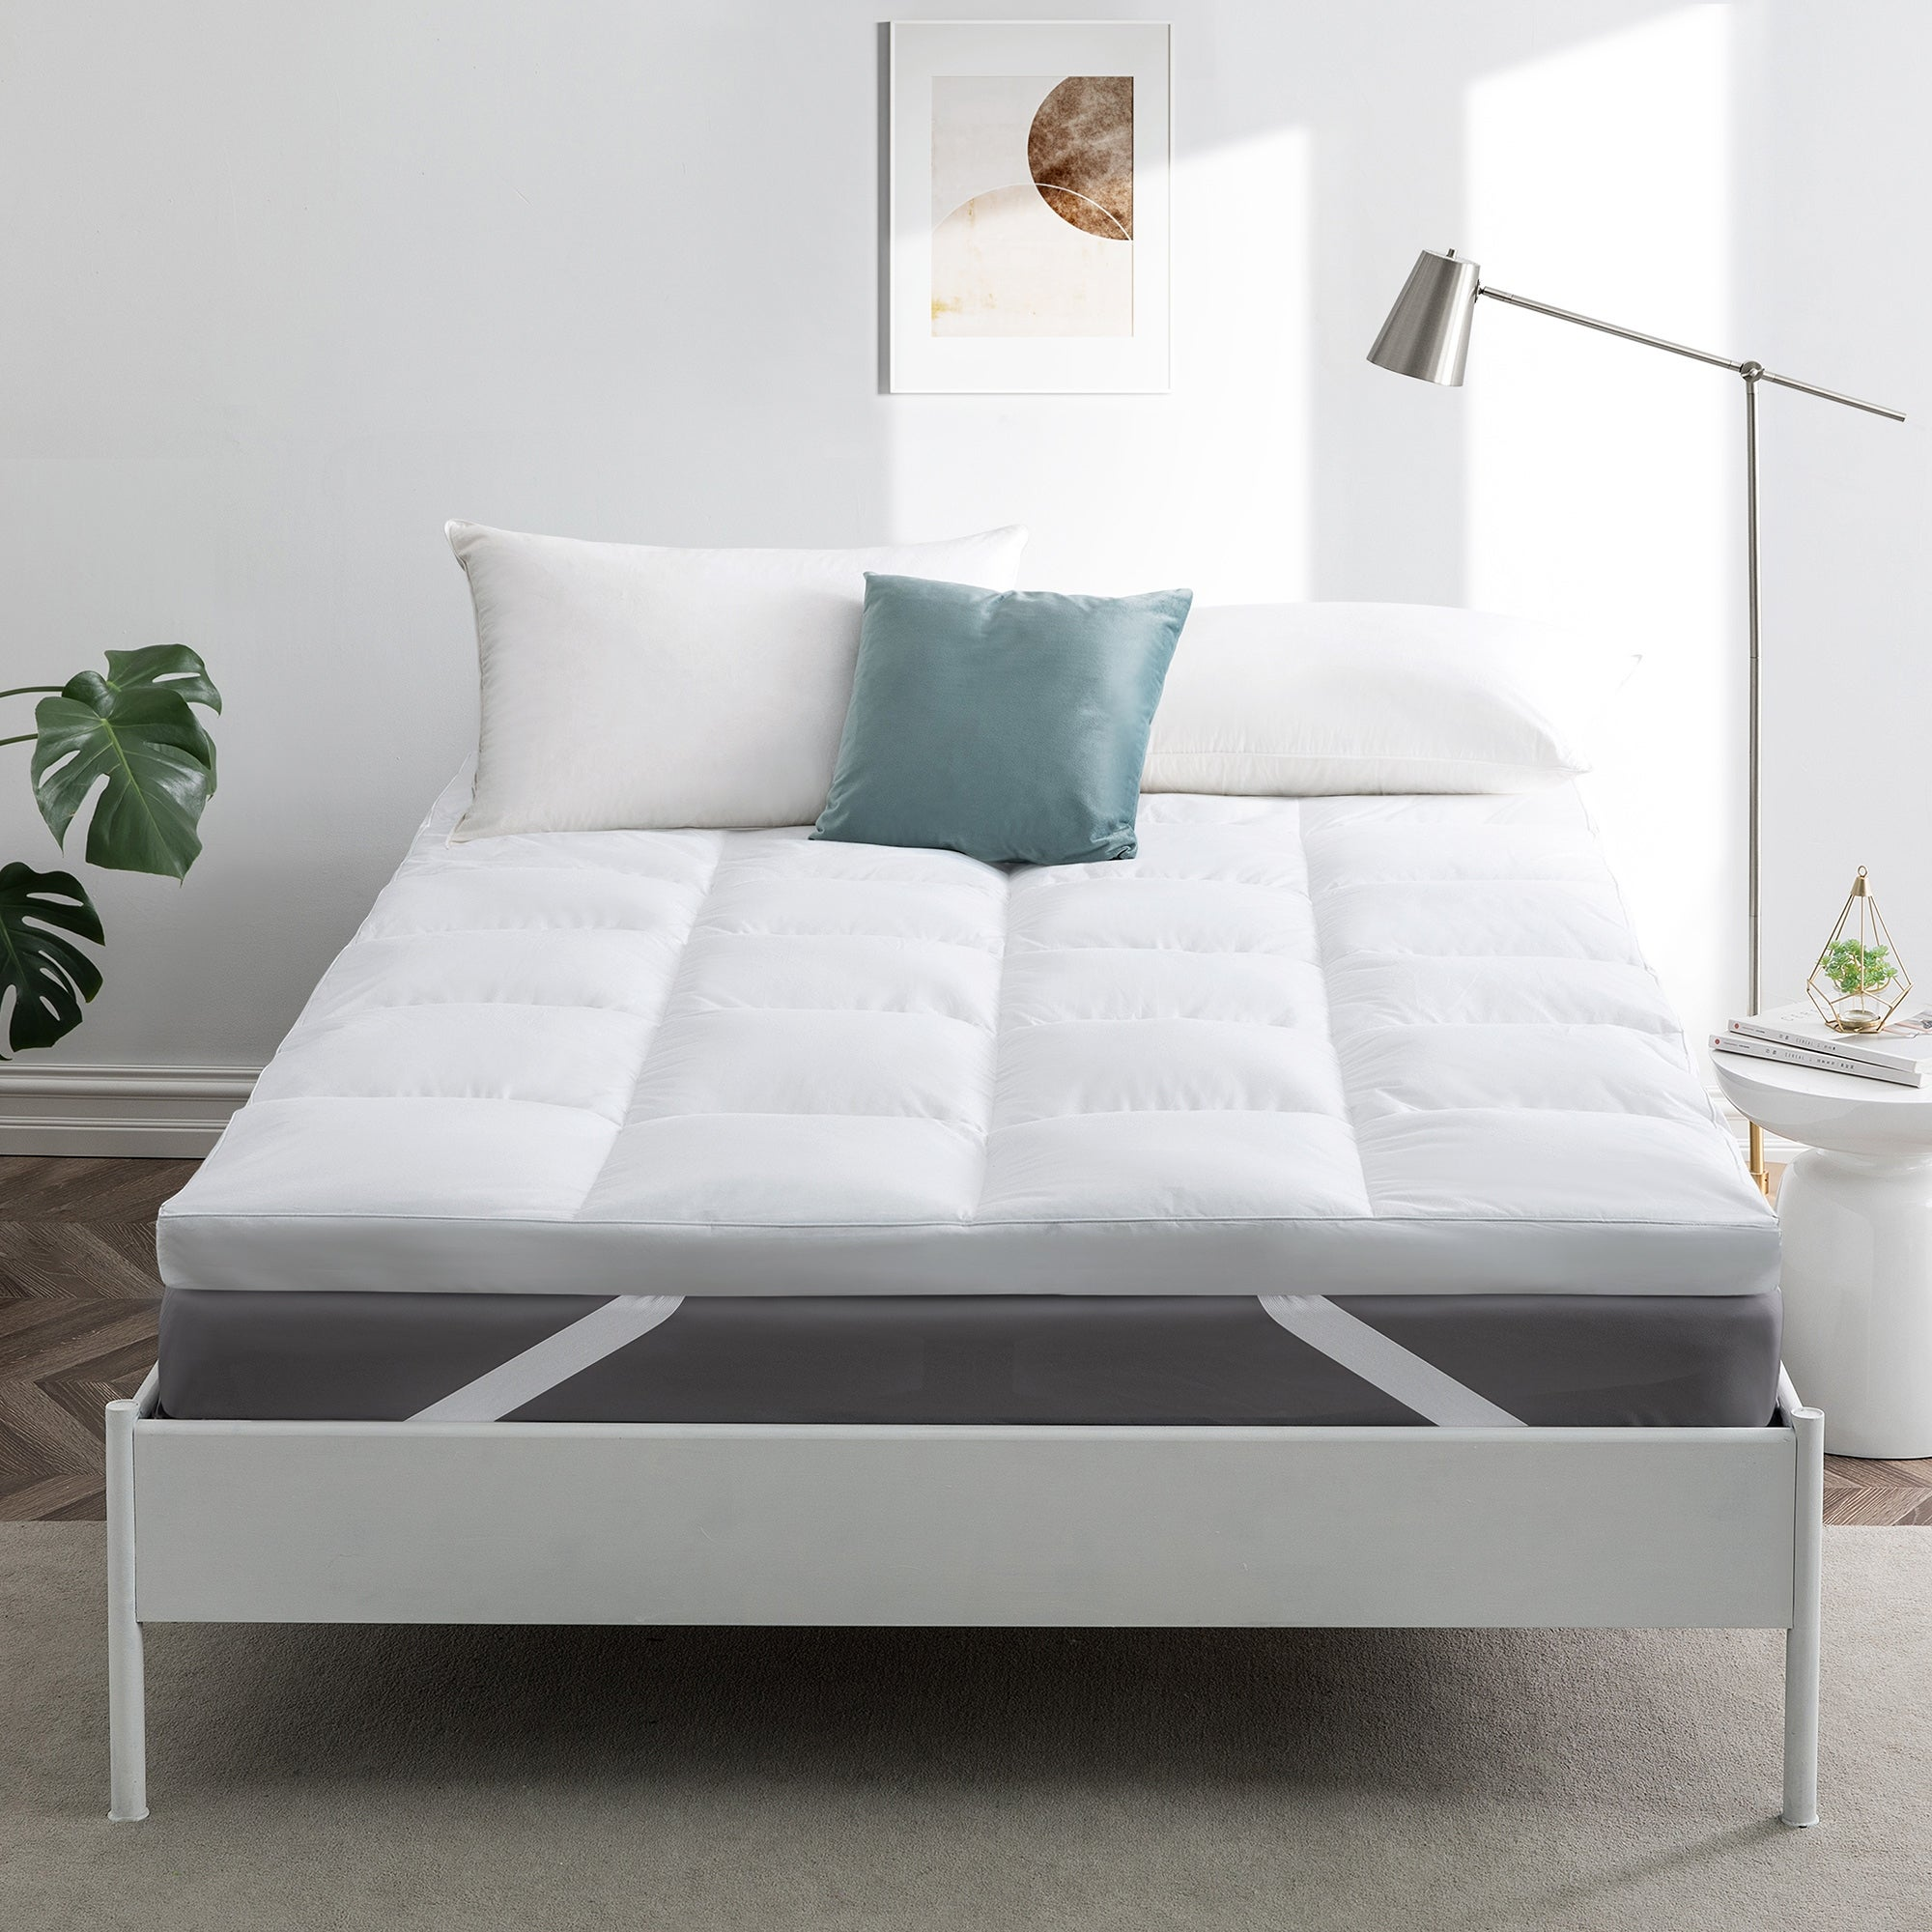 Premium Goose Feather Bed Down Mattress Topper With Cotton Cover In White Overstock 30779421